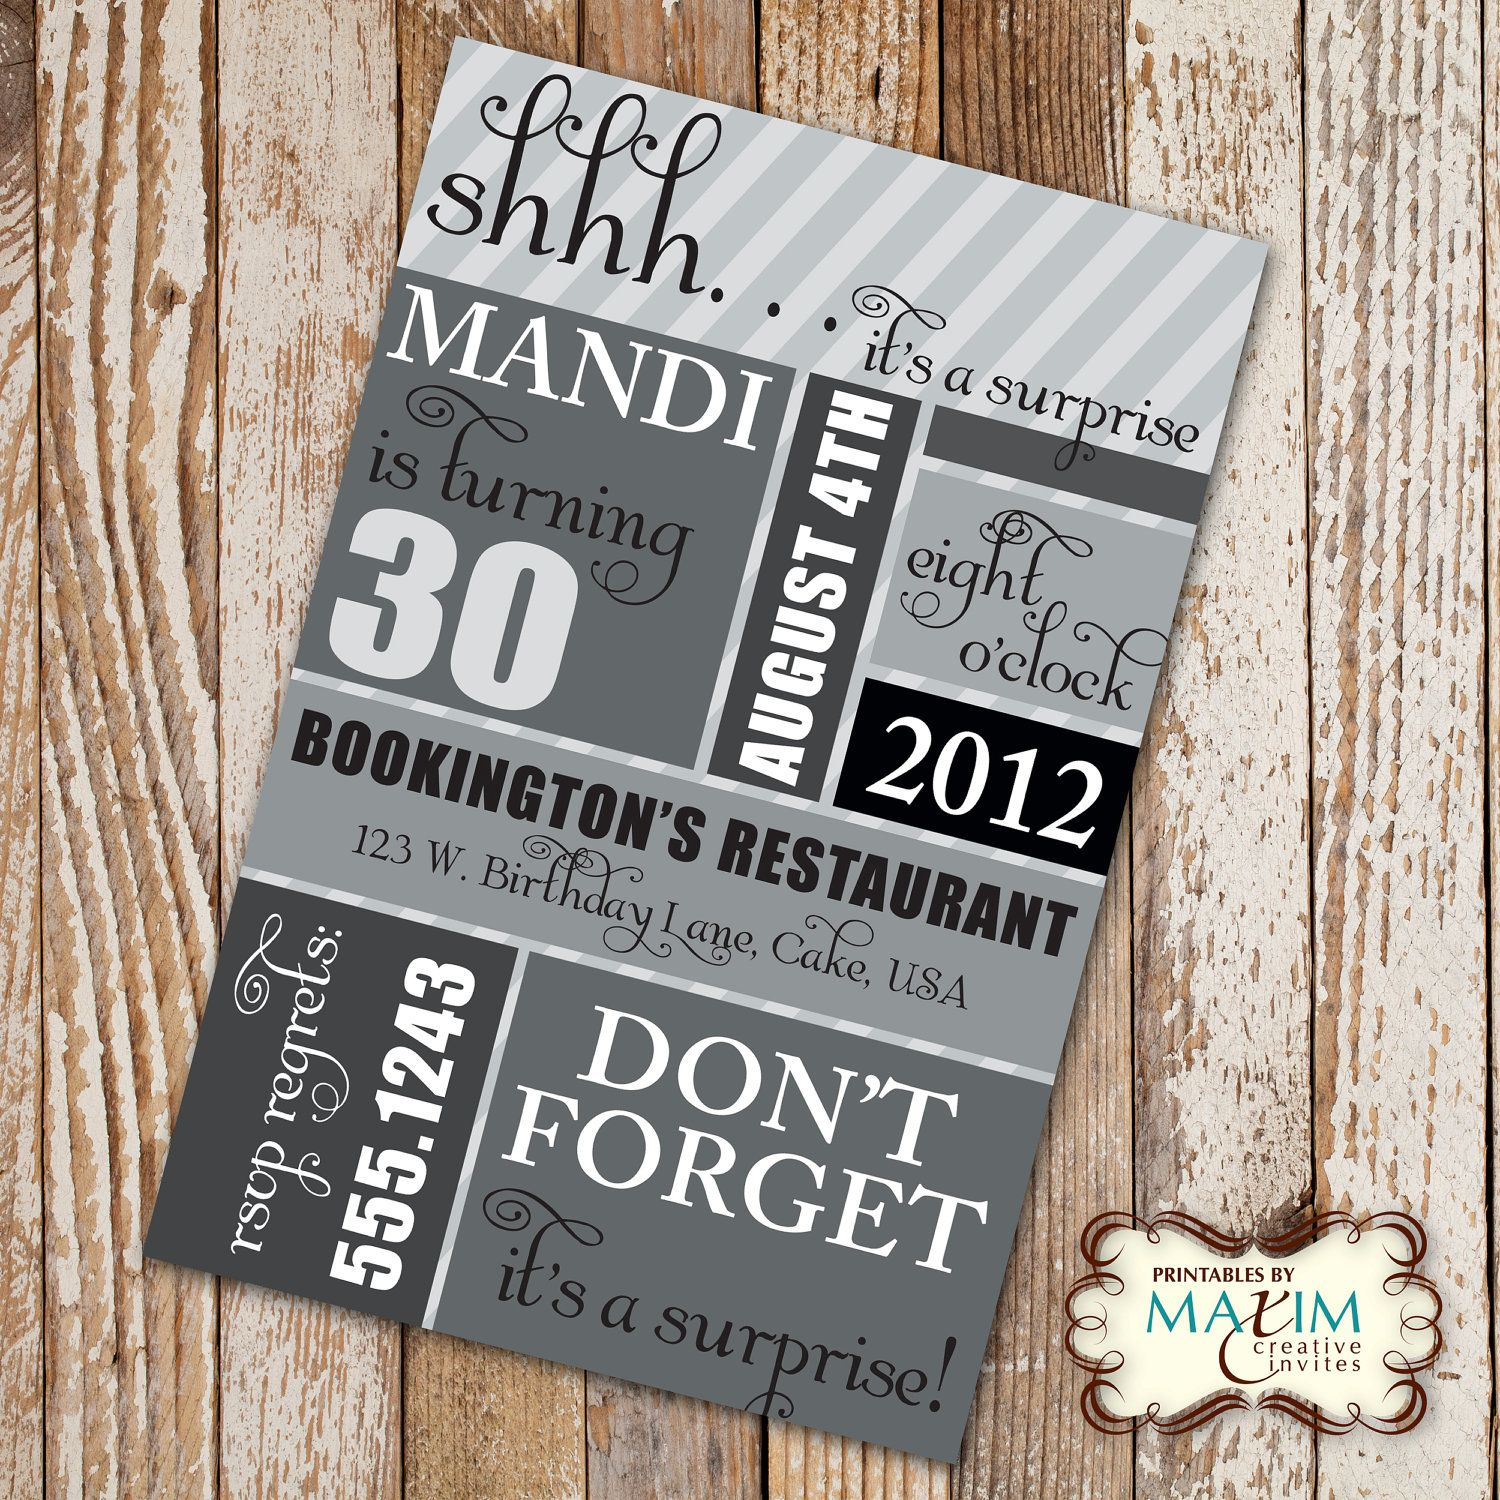 DIY Printable Invitation Surprise Birthday Party Birthday - Birthday party invitation uk